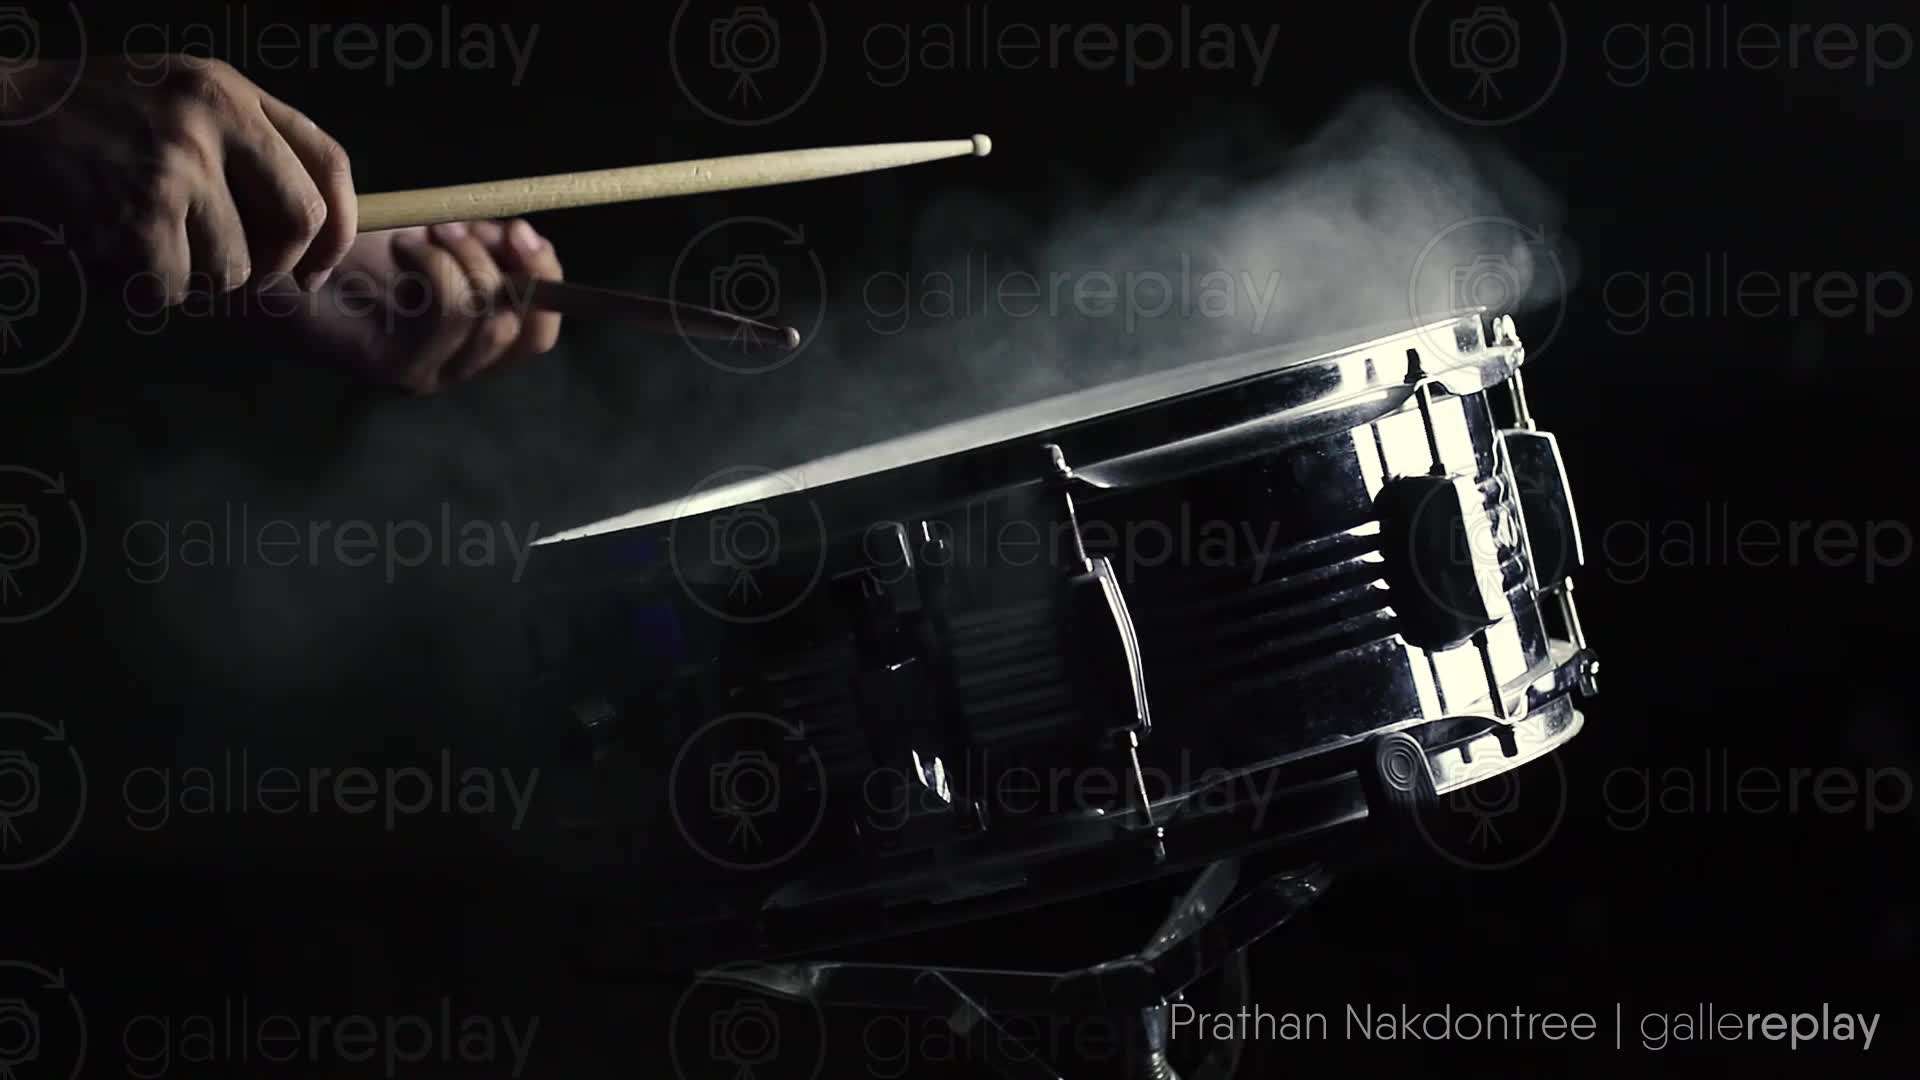 gallereplay | Close-Up of Drumstick and Snare Drum on Black Background